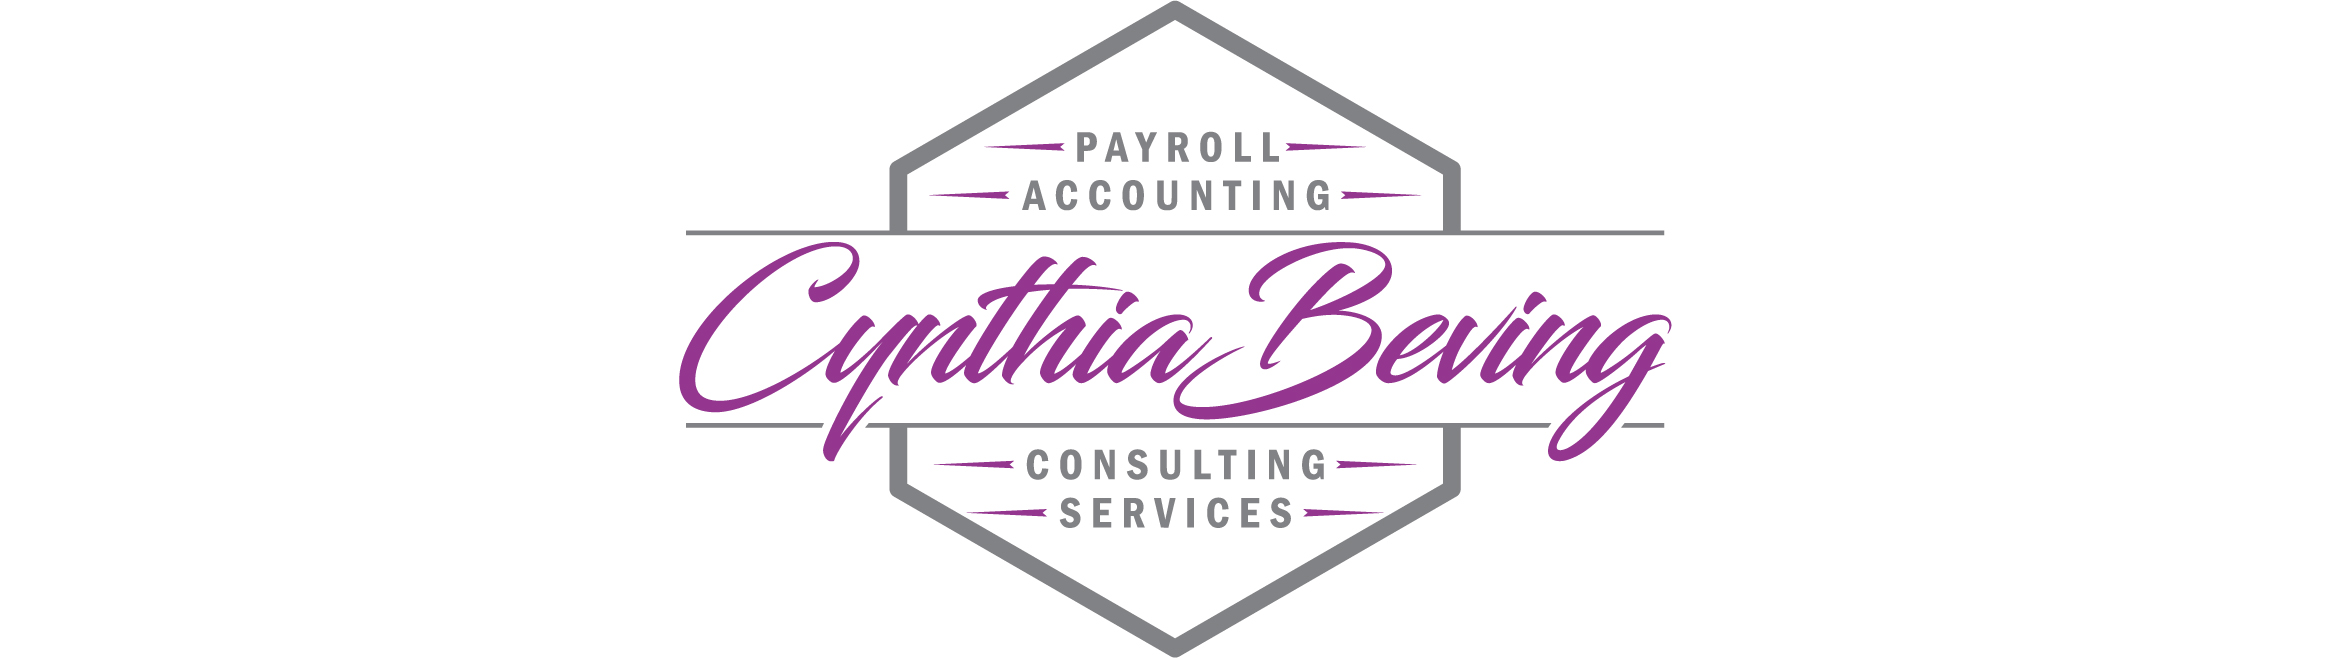 Cynthia Beving Accounting